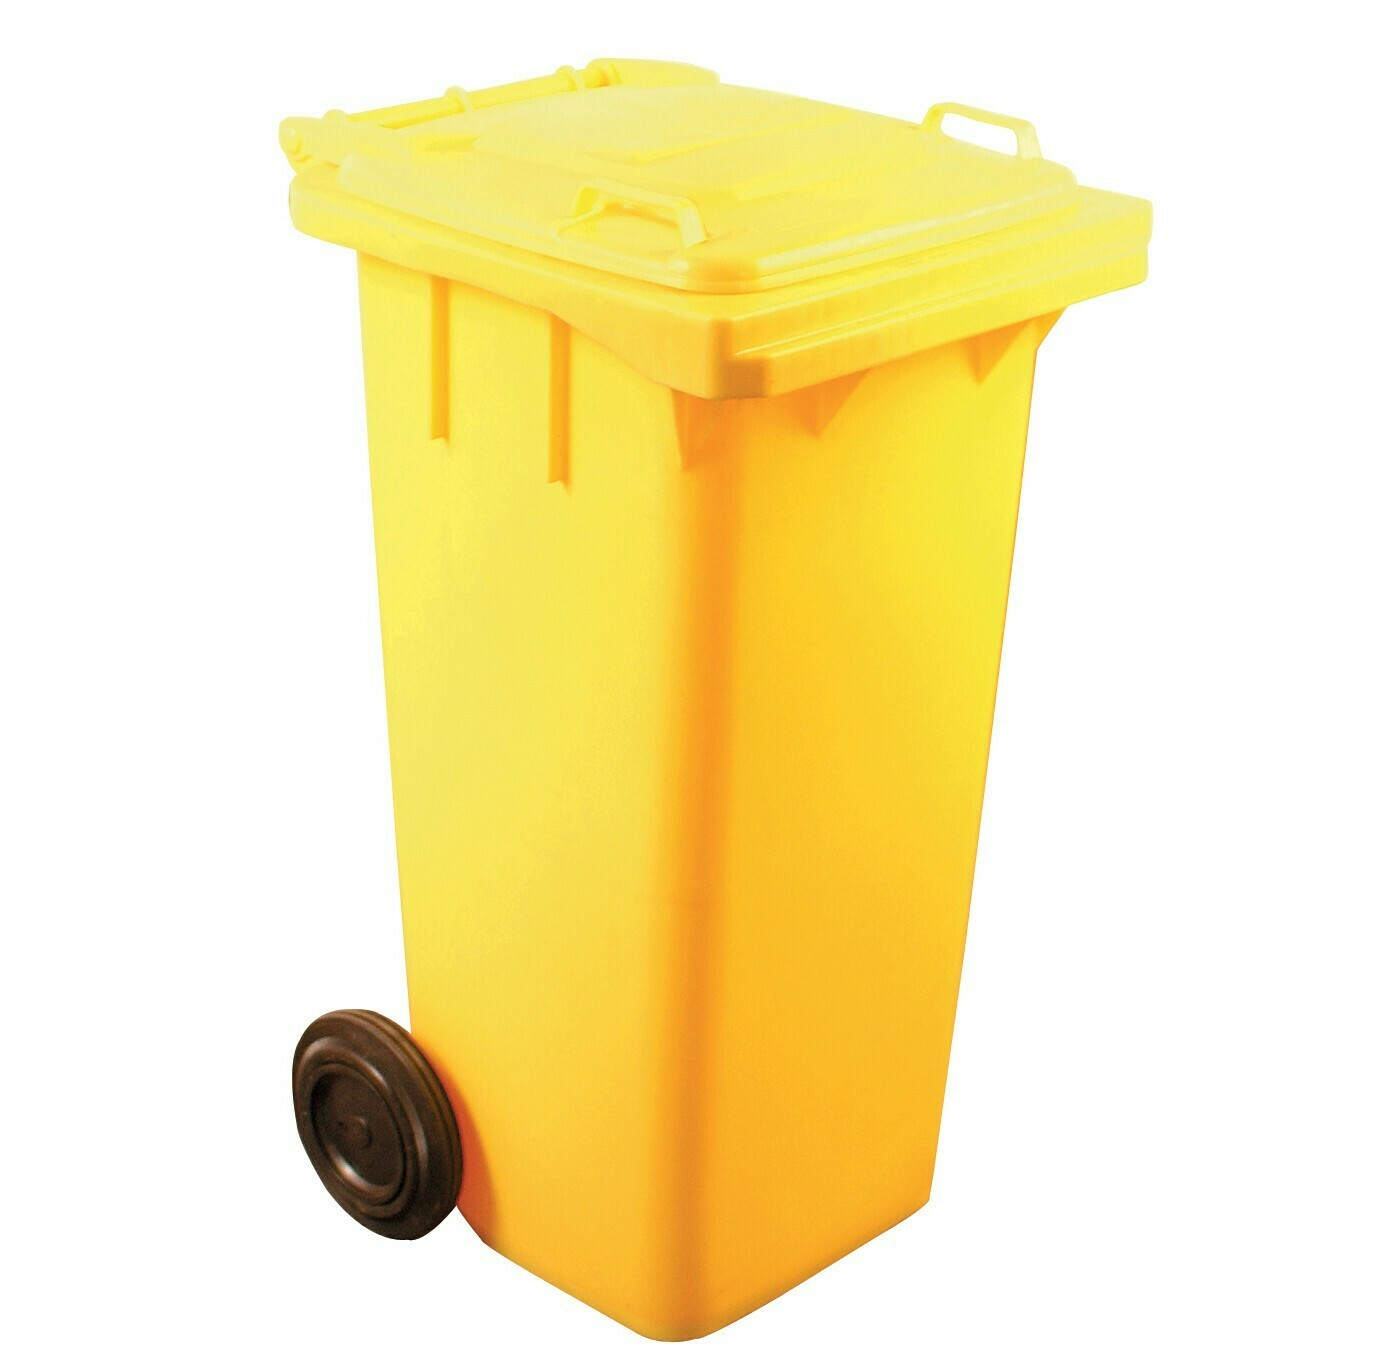 WHEELIE BIN YELLOW 240L